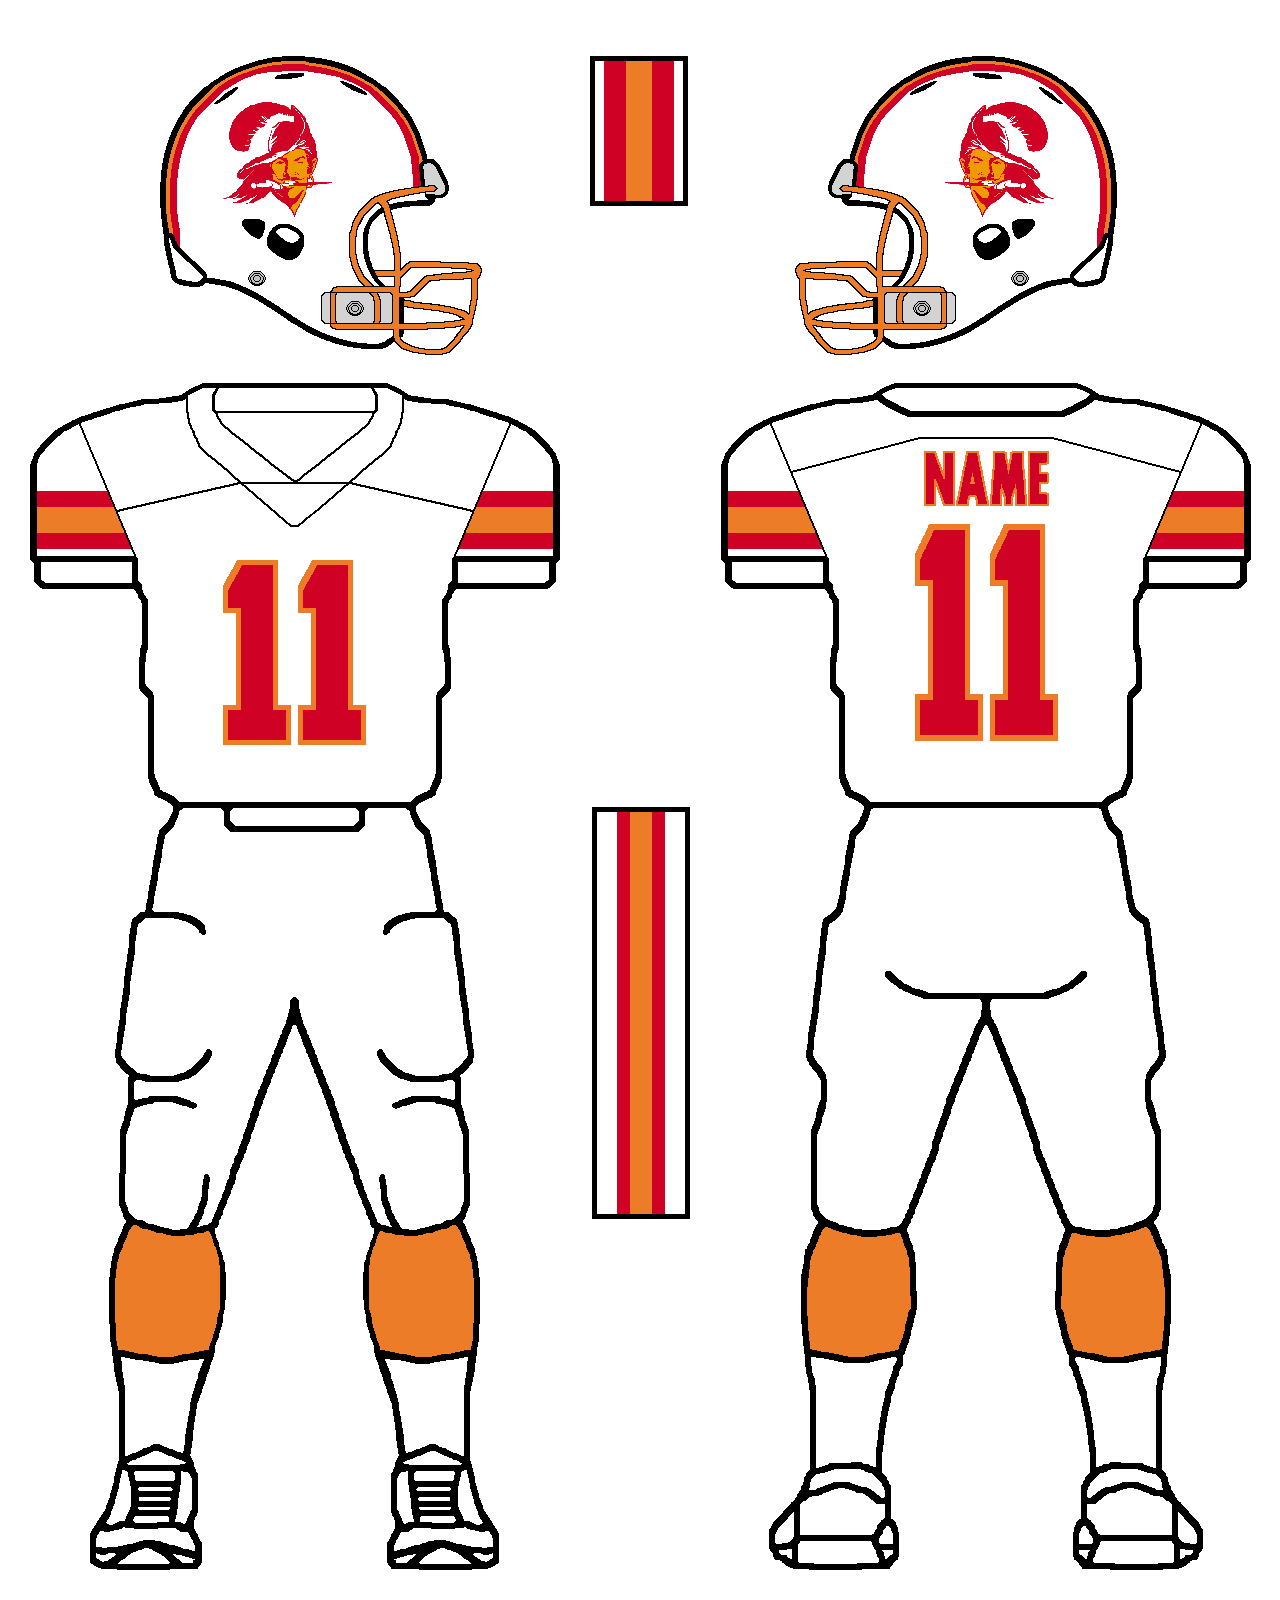 BUCCANEERS_1979_AWAY.png